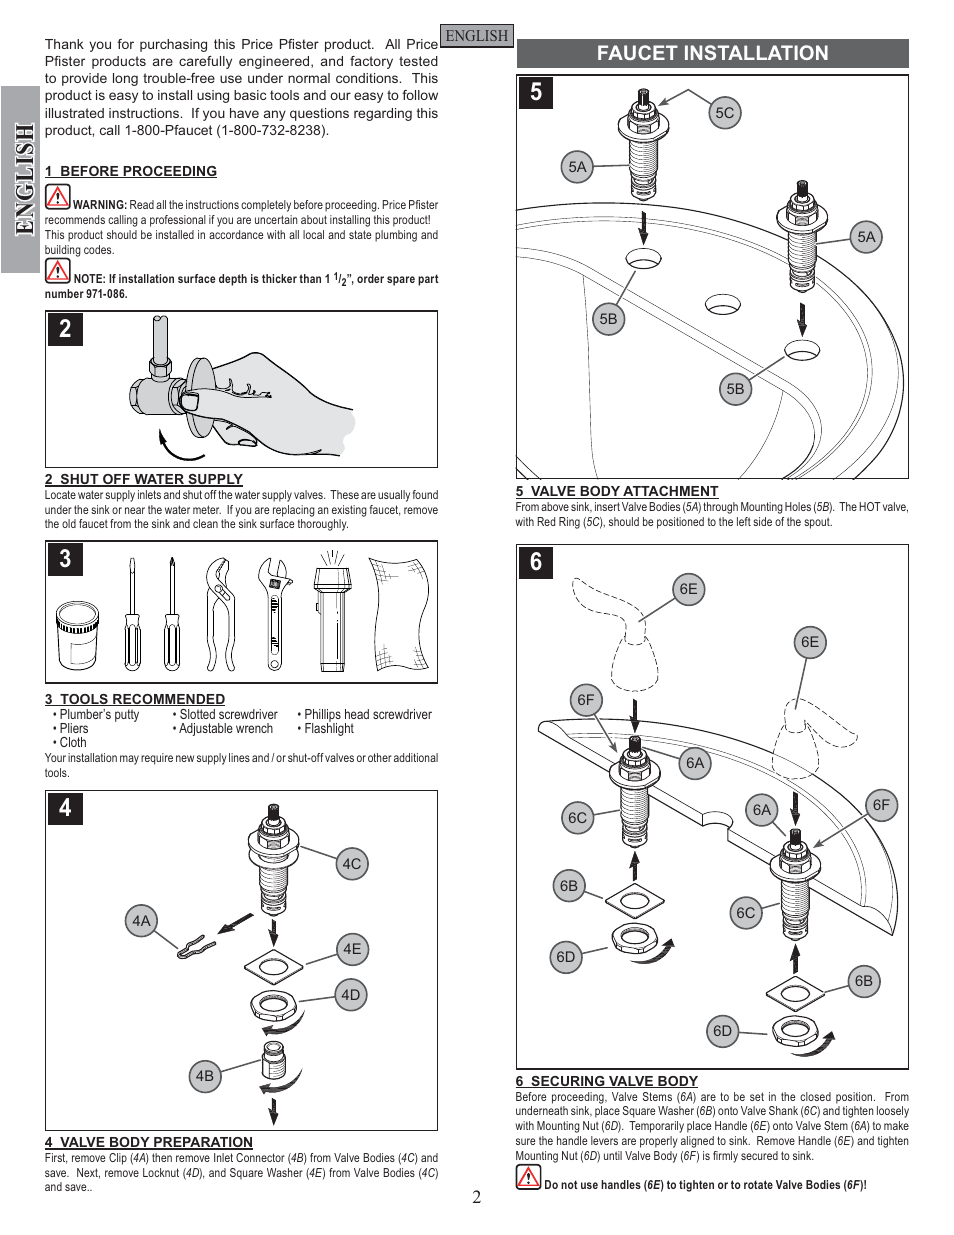 Price Pfister Goose Neck Faucet Manual Guide